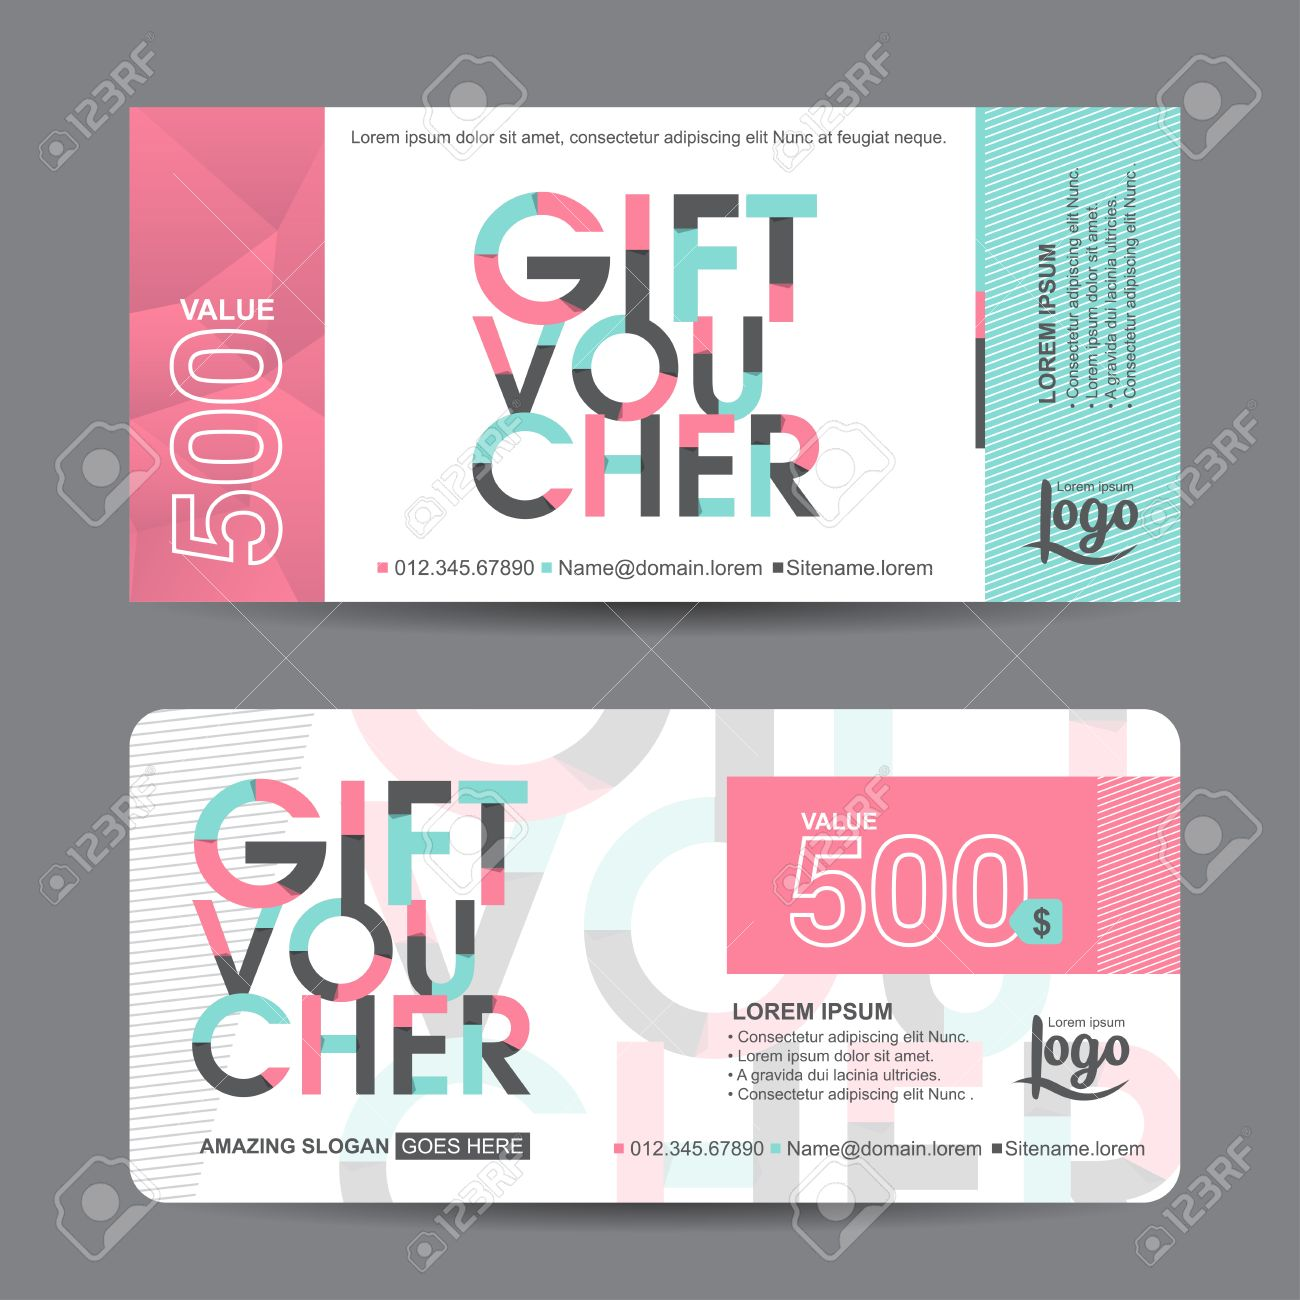 Gift voucher template with colorful patterncute gift voucher gift voucher template with colorful patterncute gift voucher certificate coupon design template collection maxwellsz